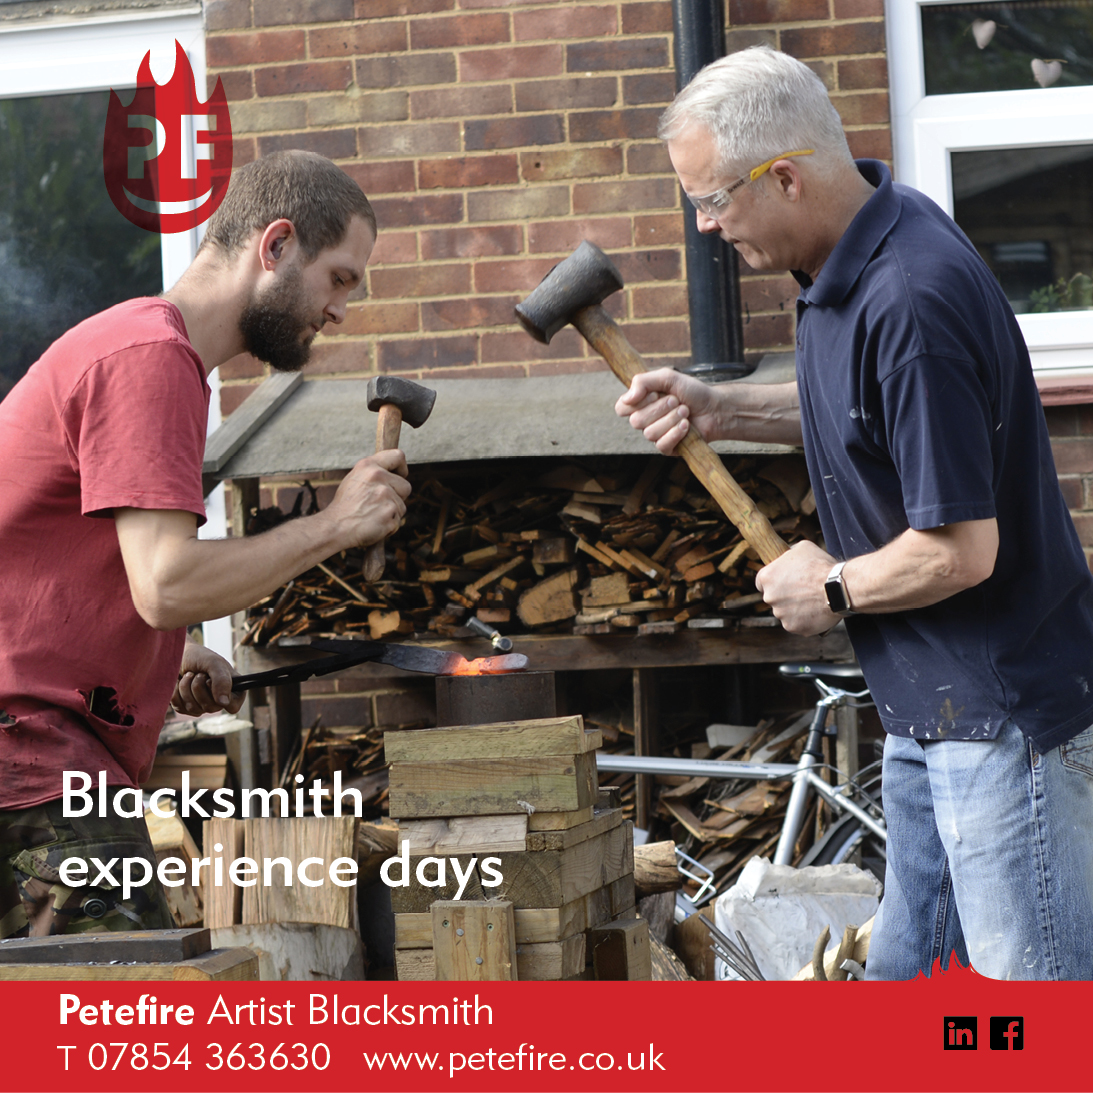 Petefire Artist Blacksmith, forging experience days, Abbots Langley, Herts